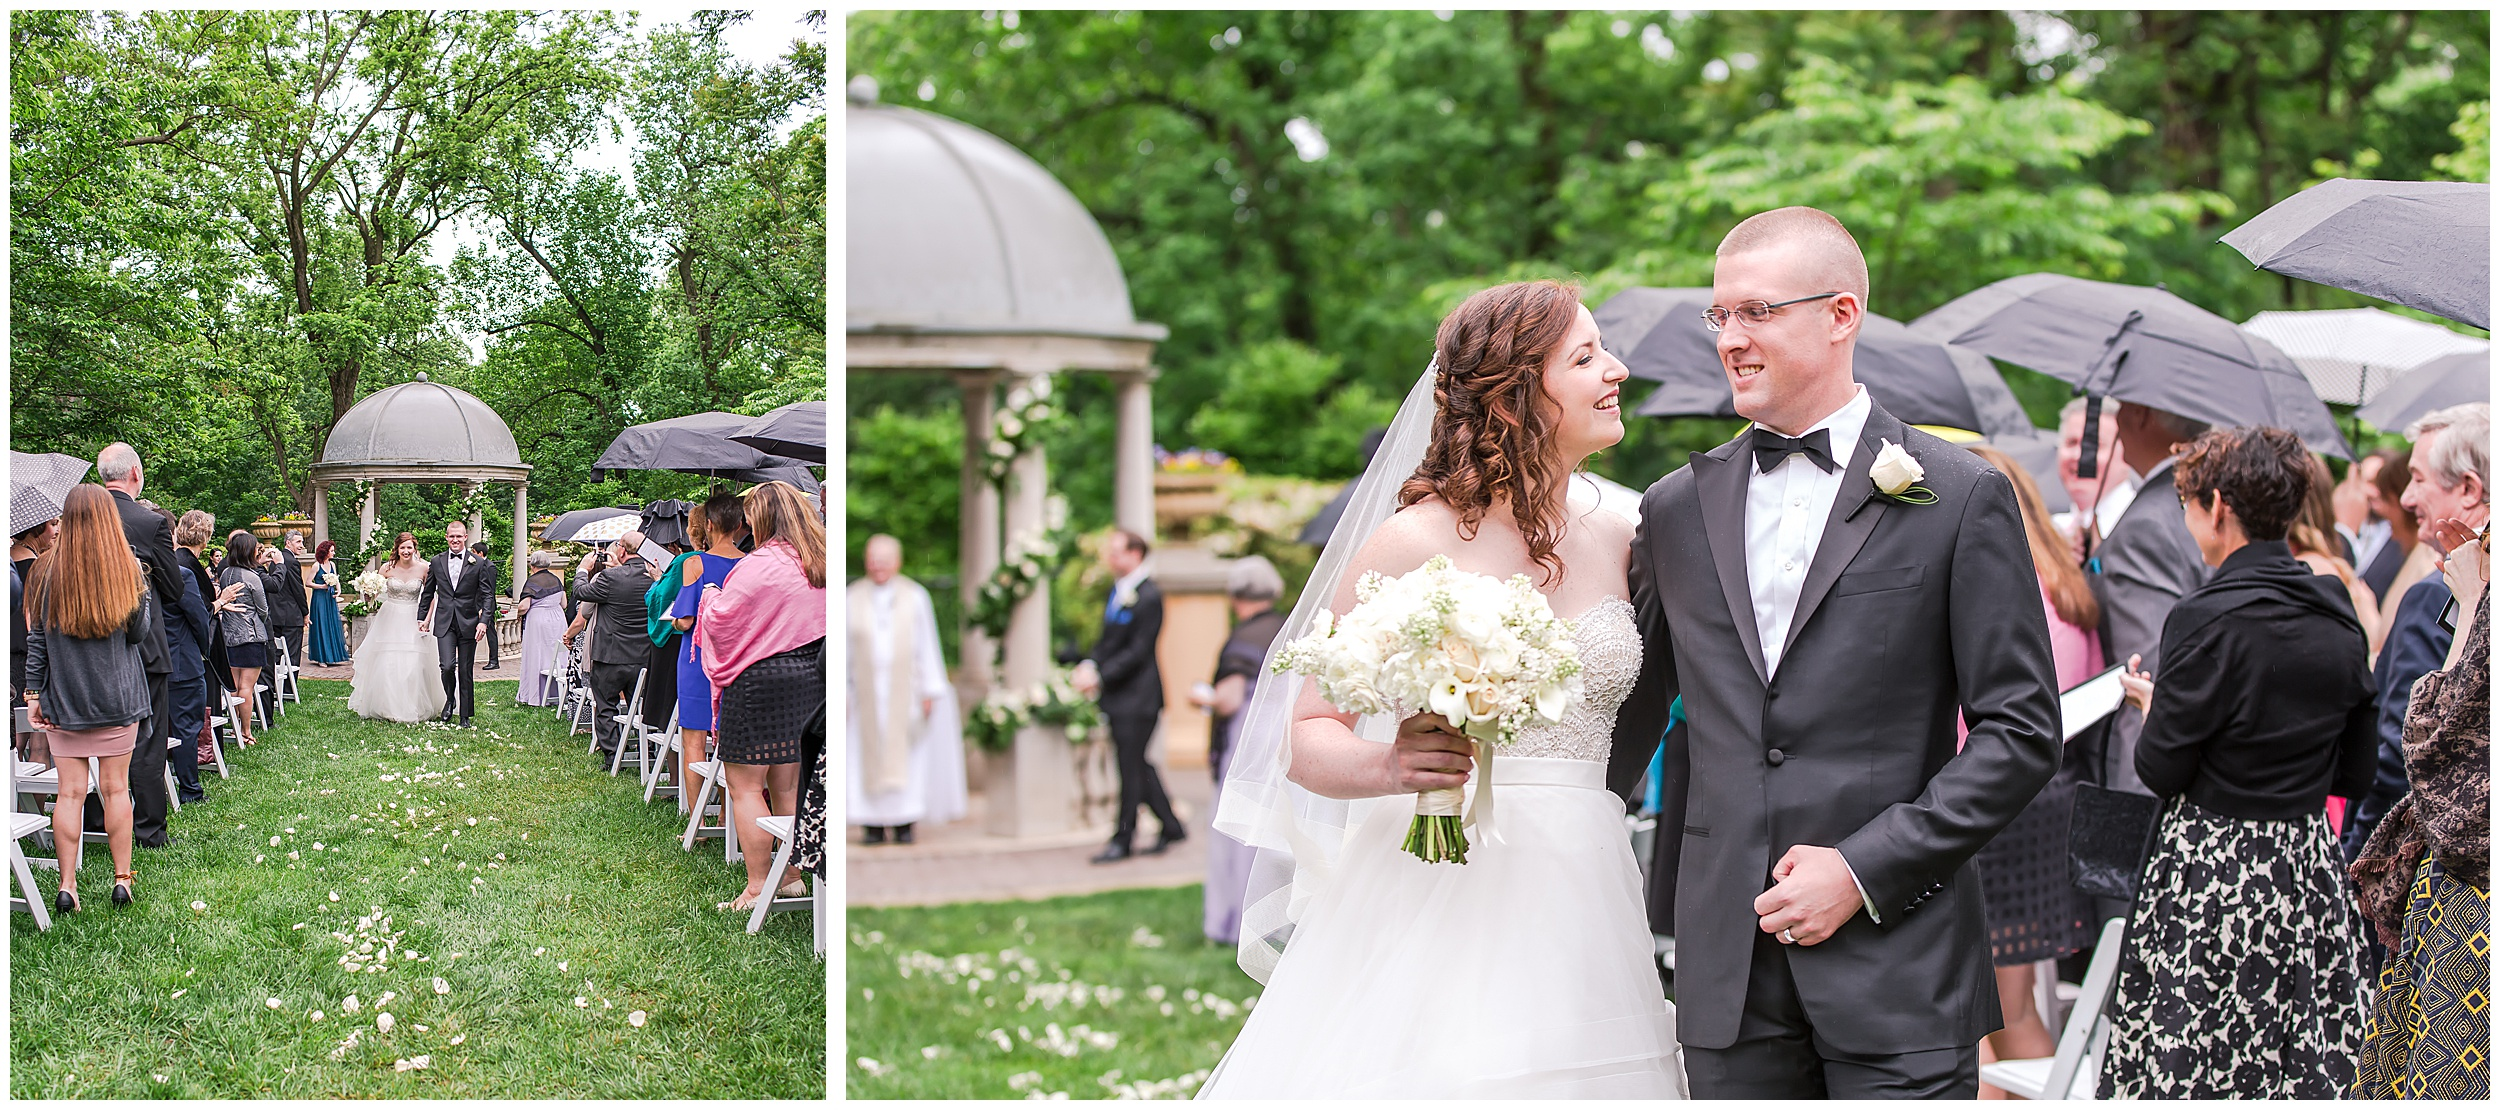 Irish Springtime Omni Shoreham Wedding just-married-recession-bride-groom-rain